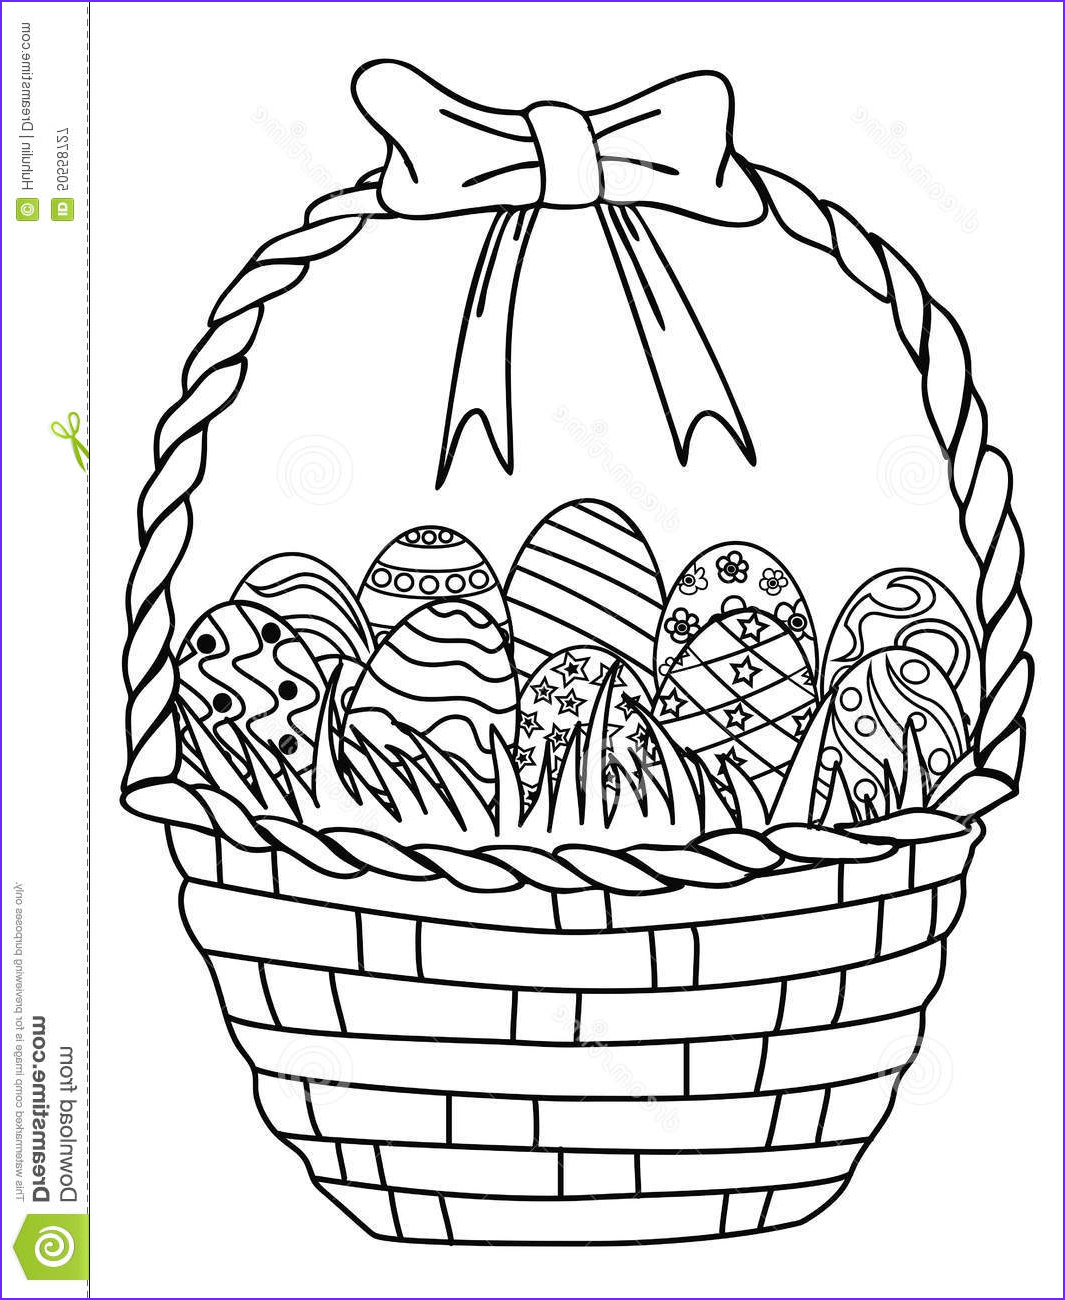 stock illustration basket easter eggs outline coloring page isolated hand drawn white background image